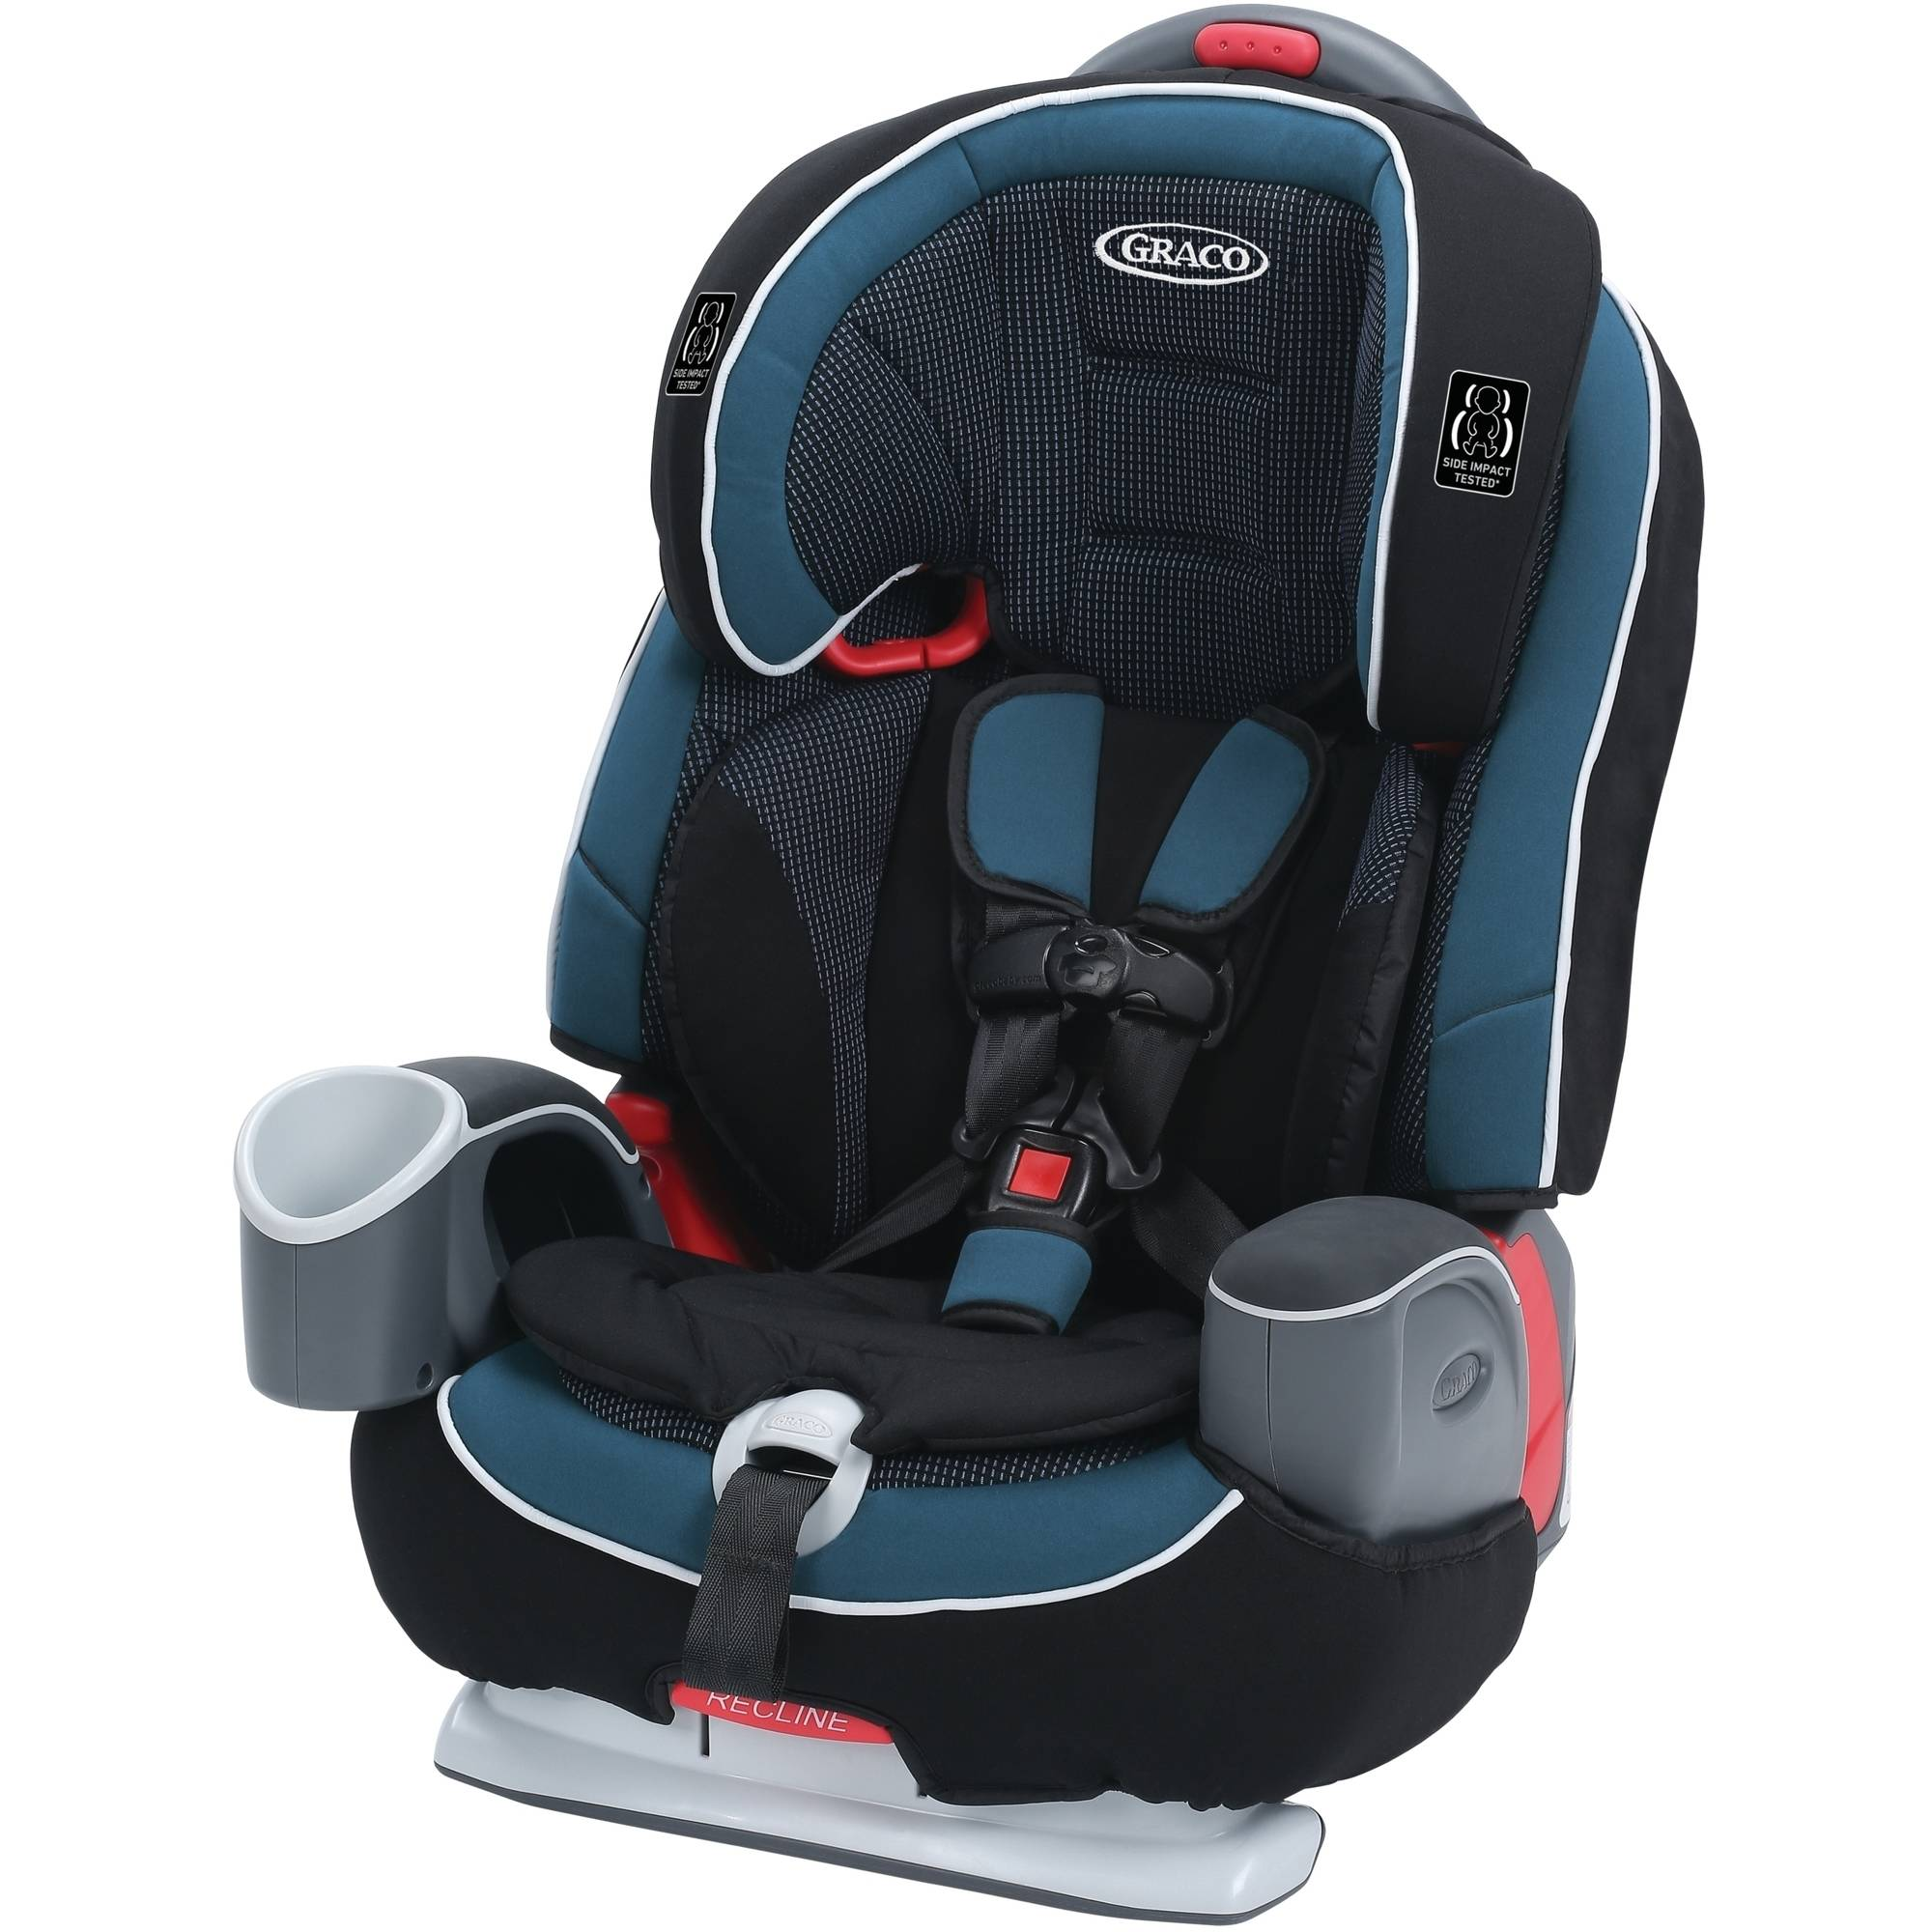 Graco Nautilus 65 LX 3 - in - 1 Convertible Harness Booster Car Seat, Zell